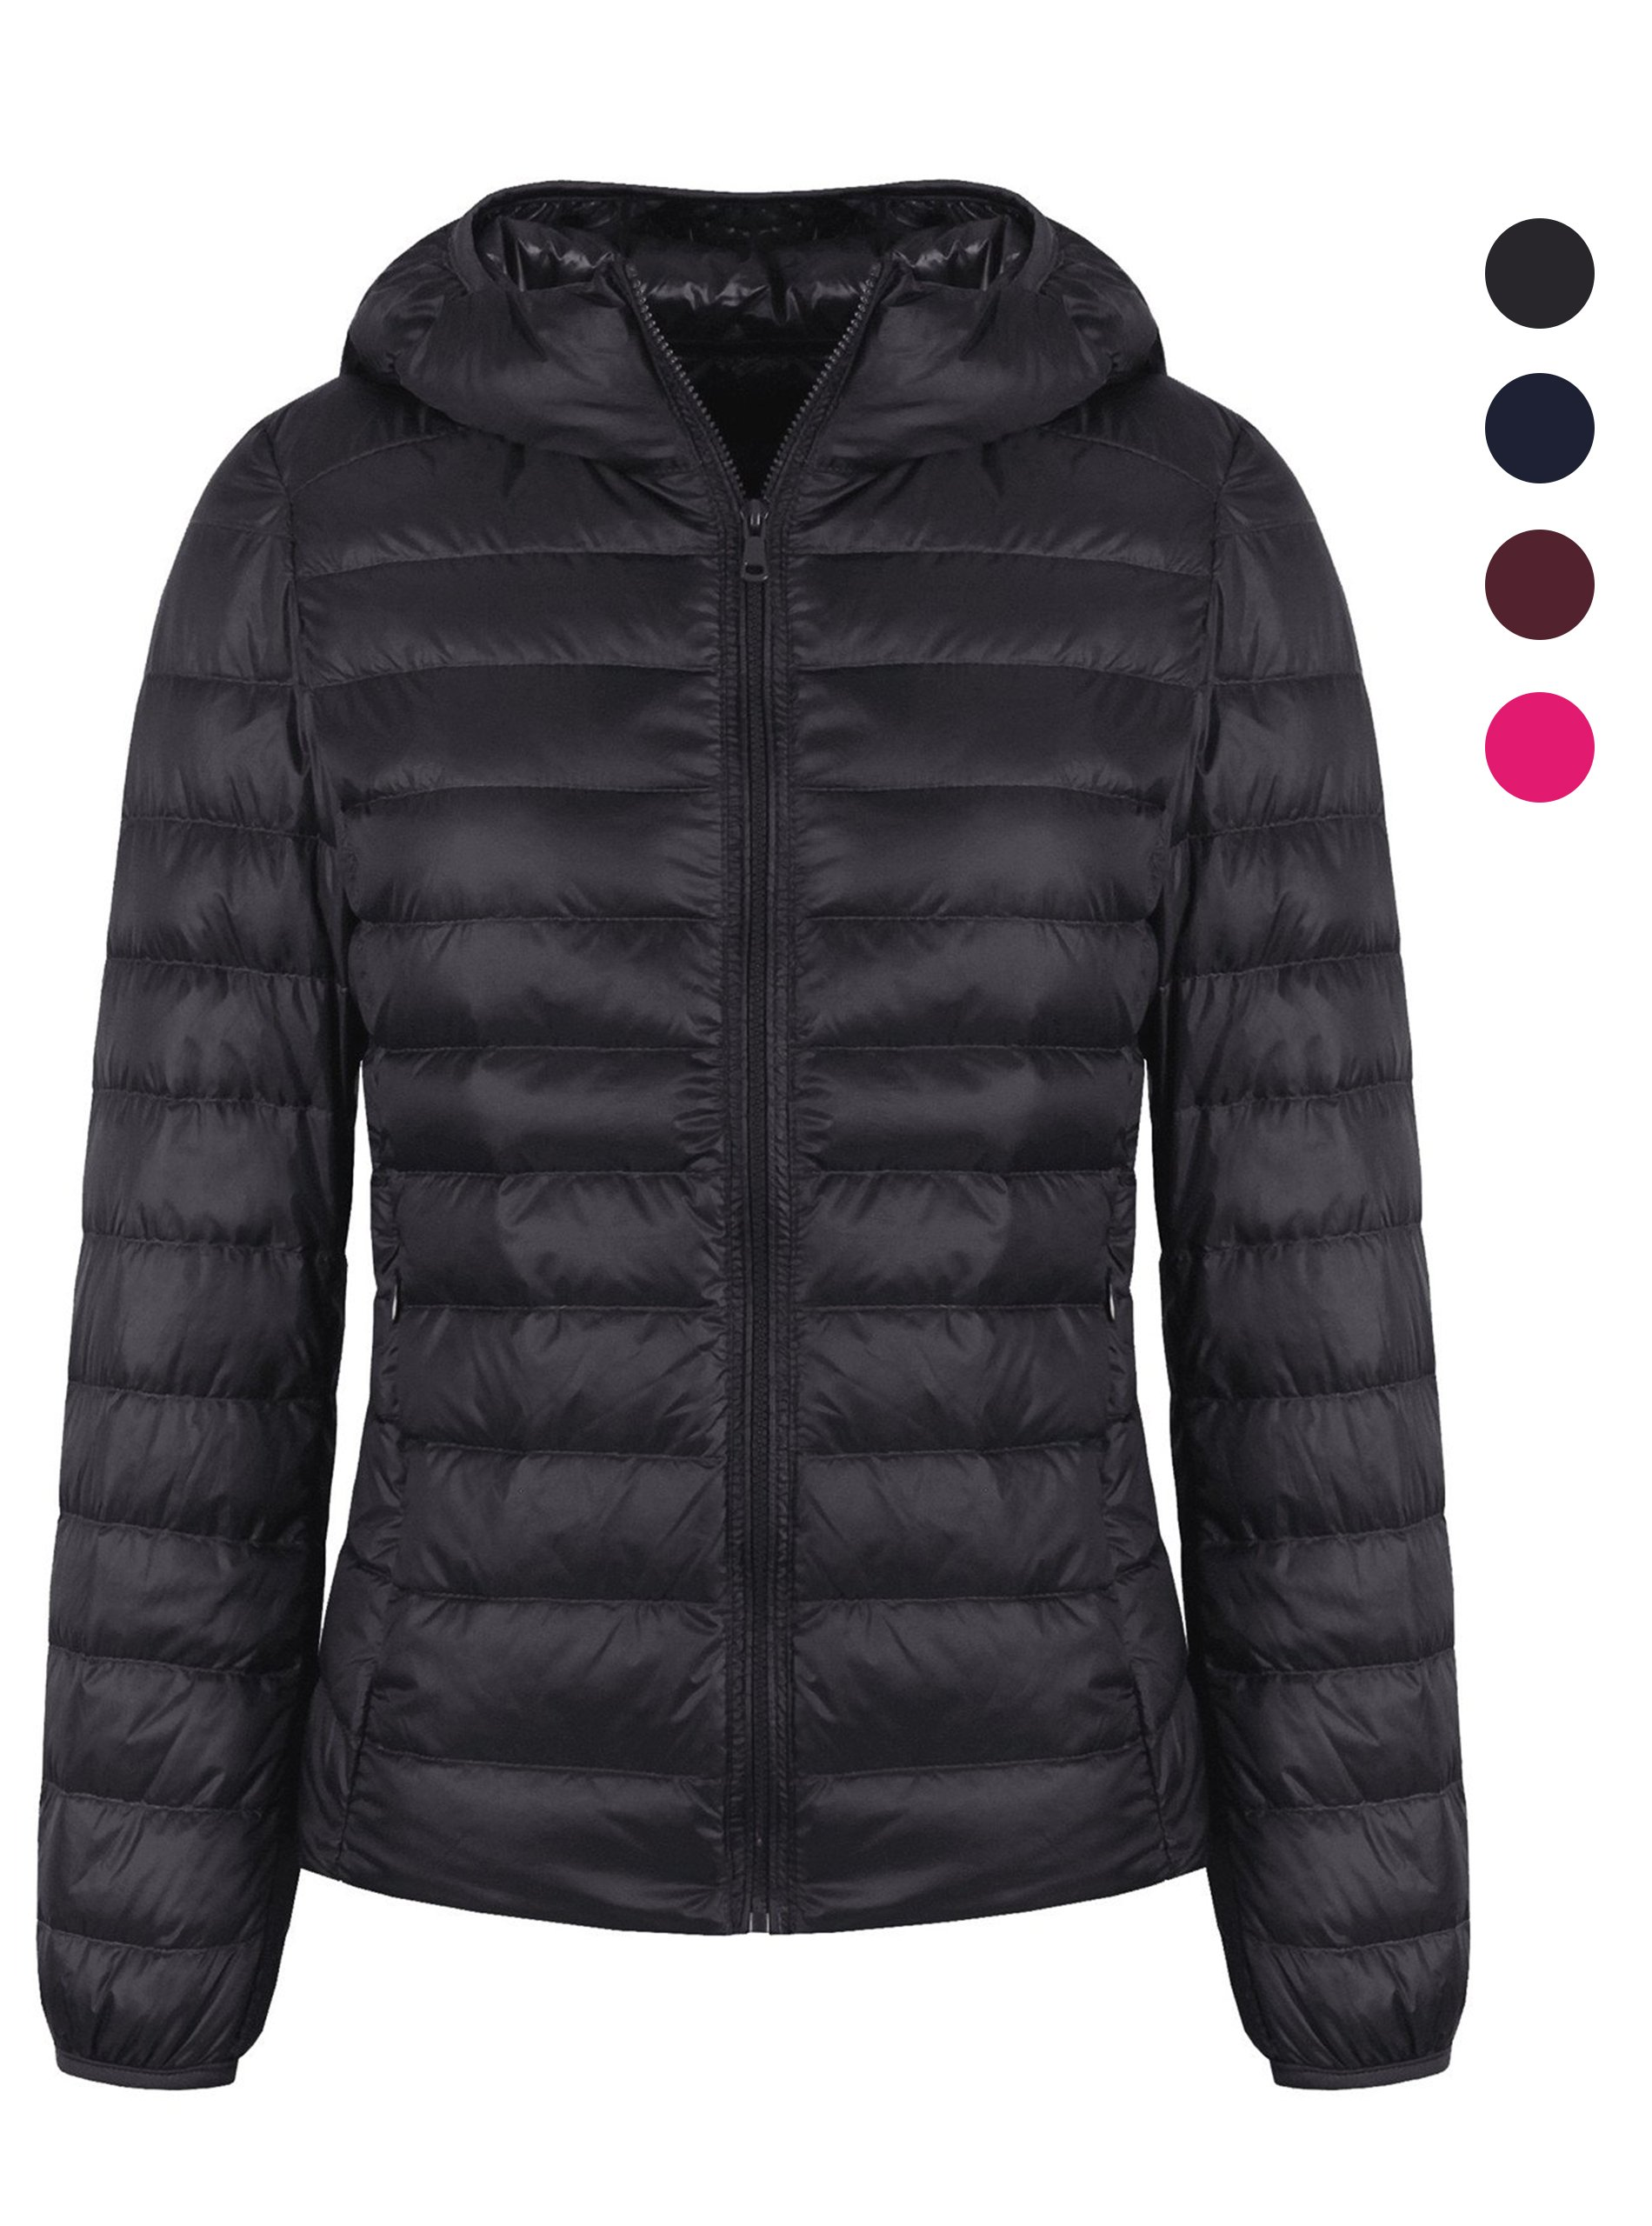 ZITY Down Jacket For Women,Hooded Puffer Water Repellent Down Jacket Black, US S=Label XL